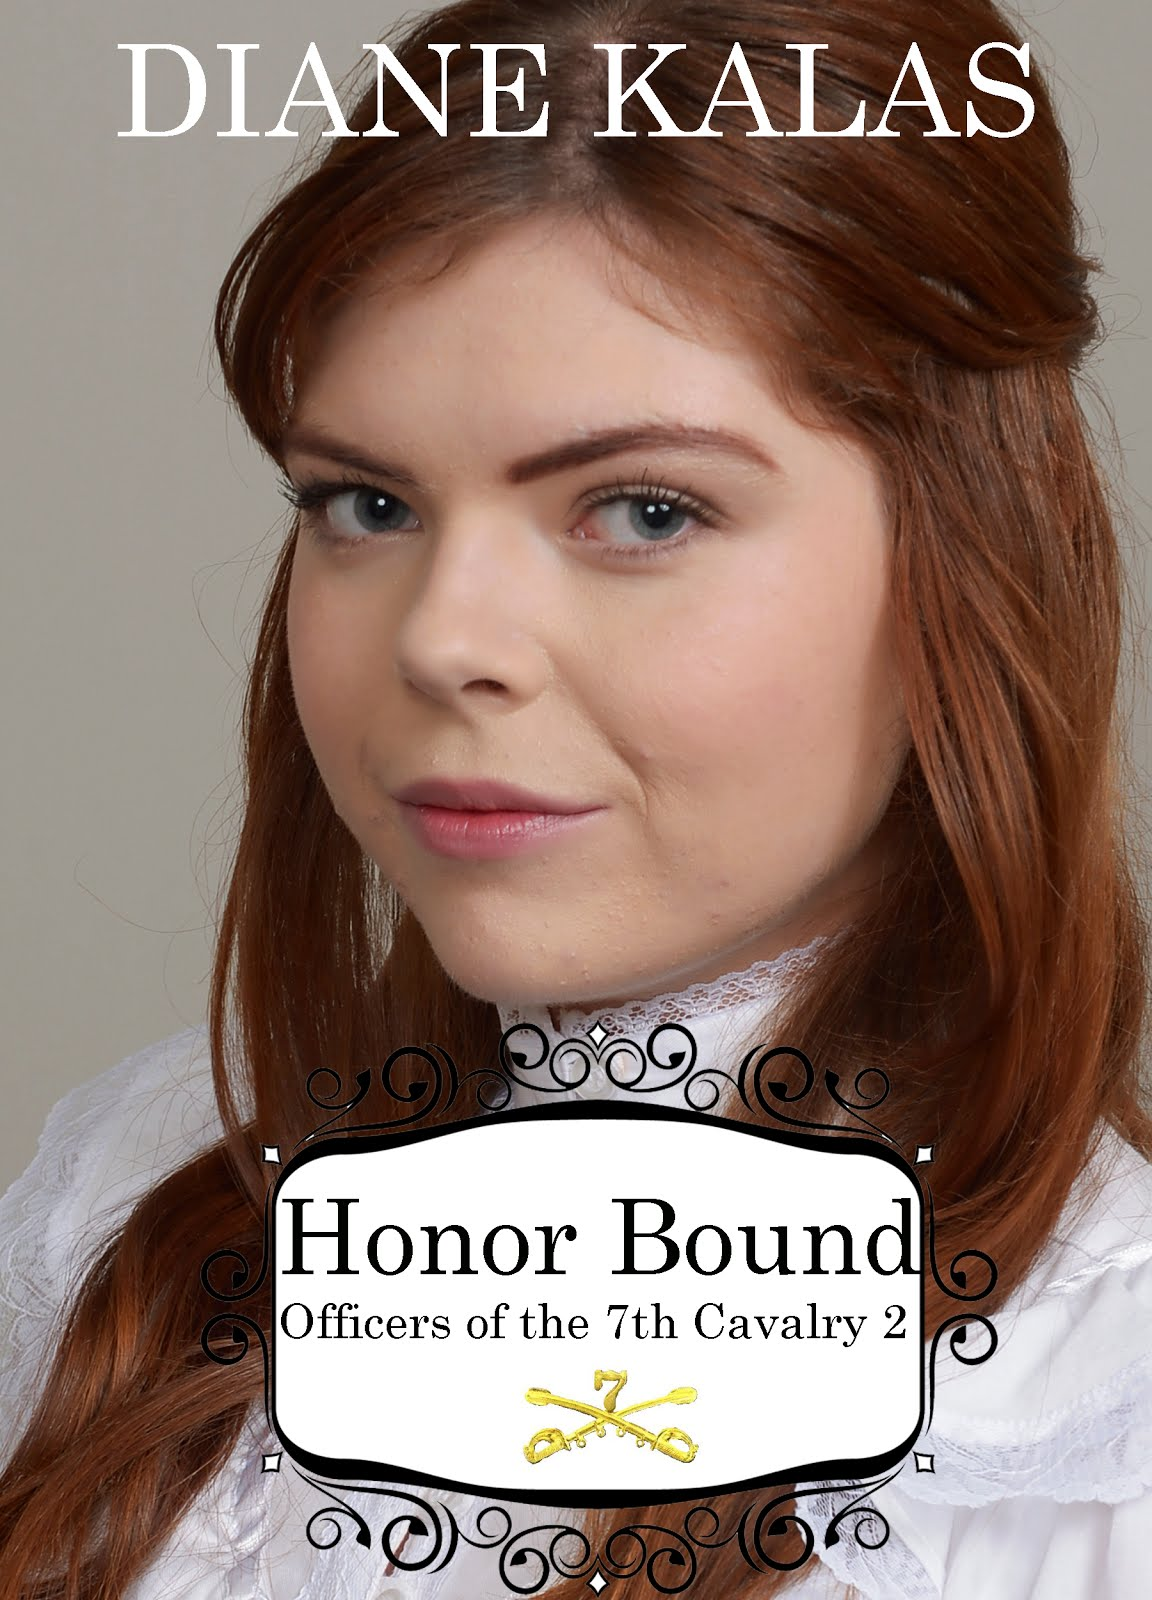 HONOR BOUND - An Inspirational Historical Romance Set in the West